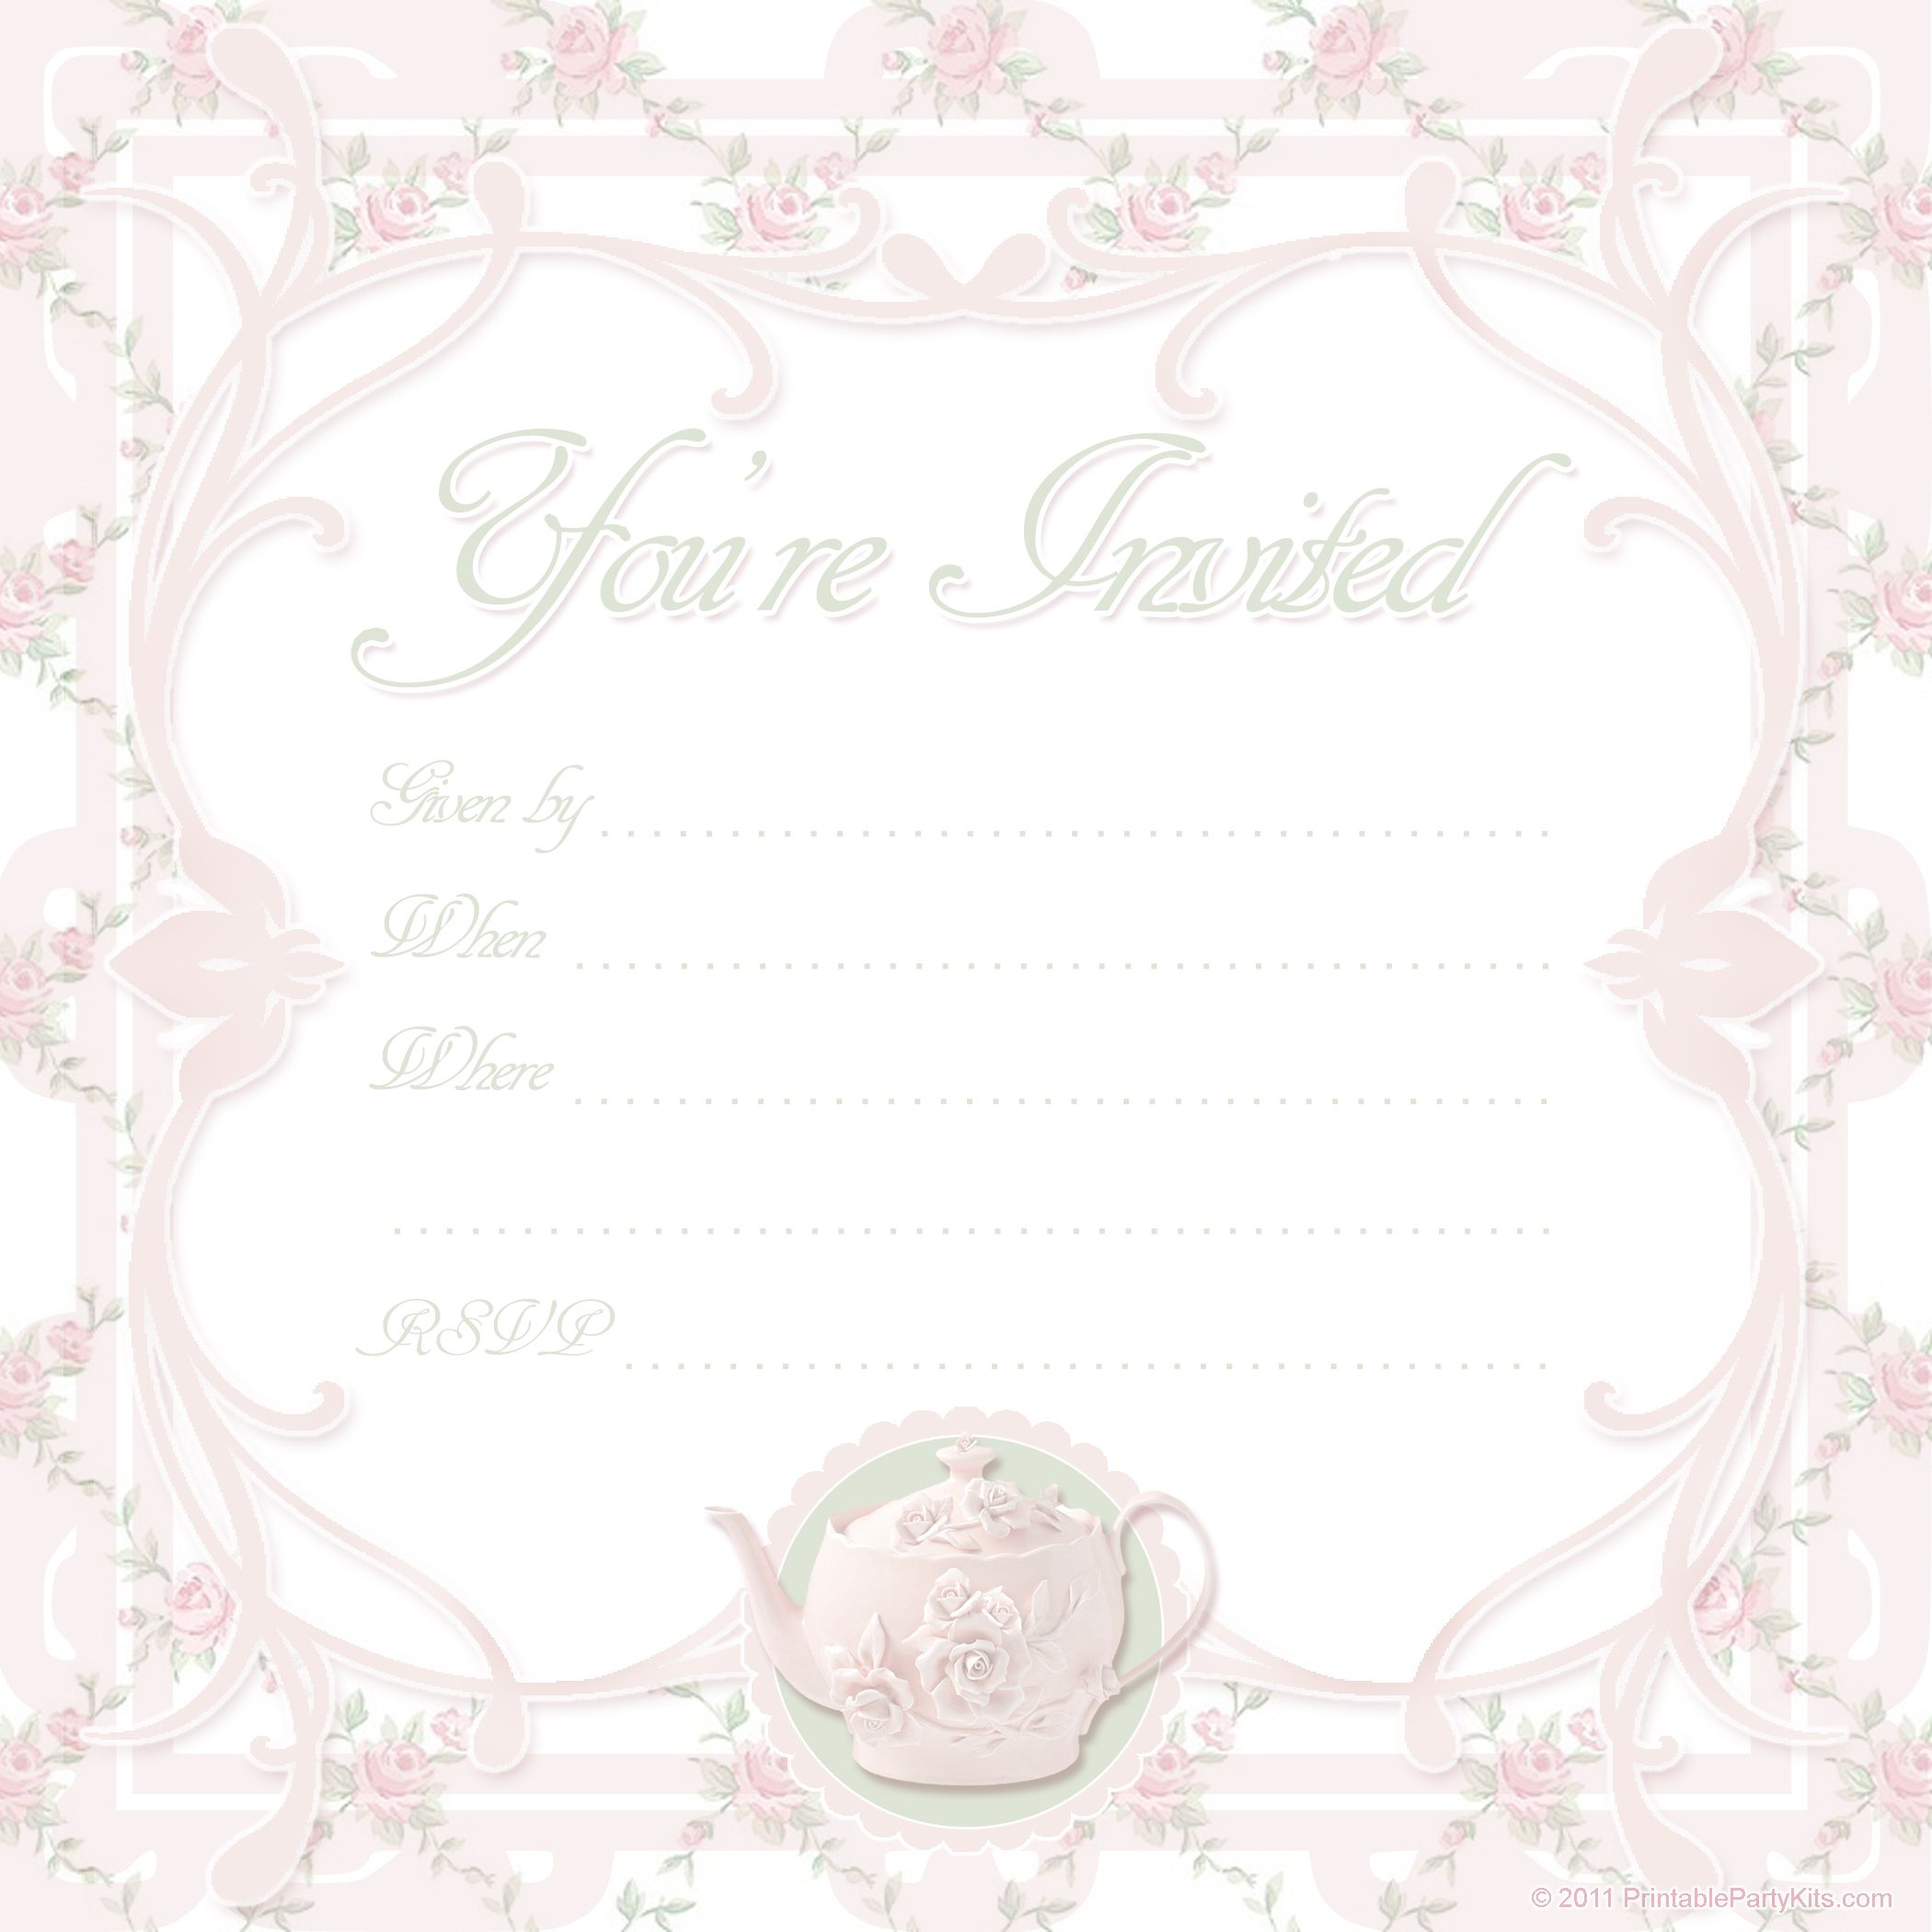 vintage tea party invitations | Free Printable Tea Party Invite Template | Printable Party Kits